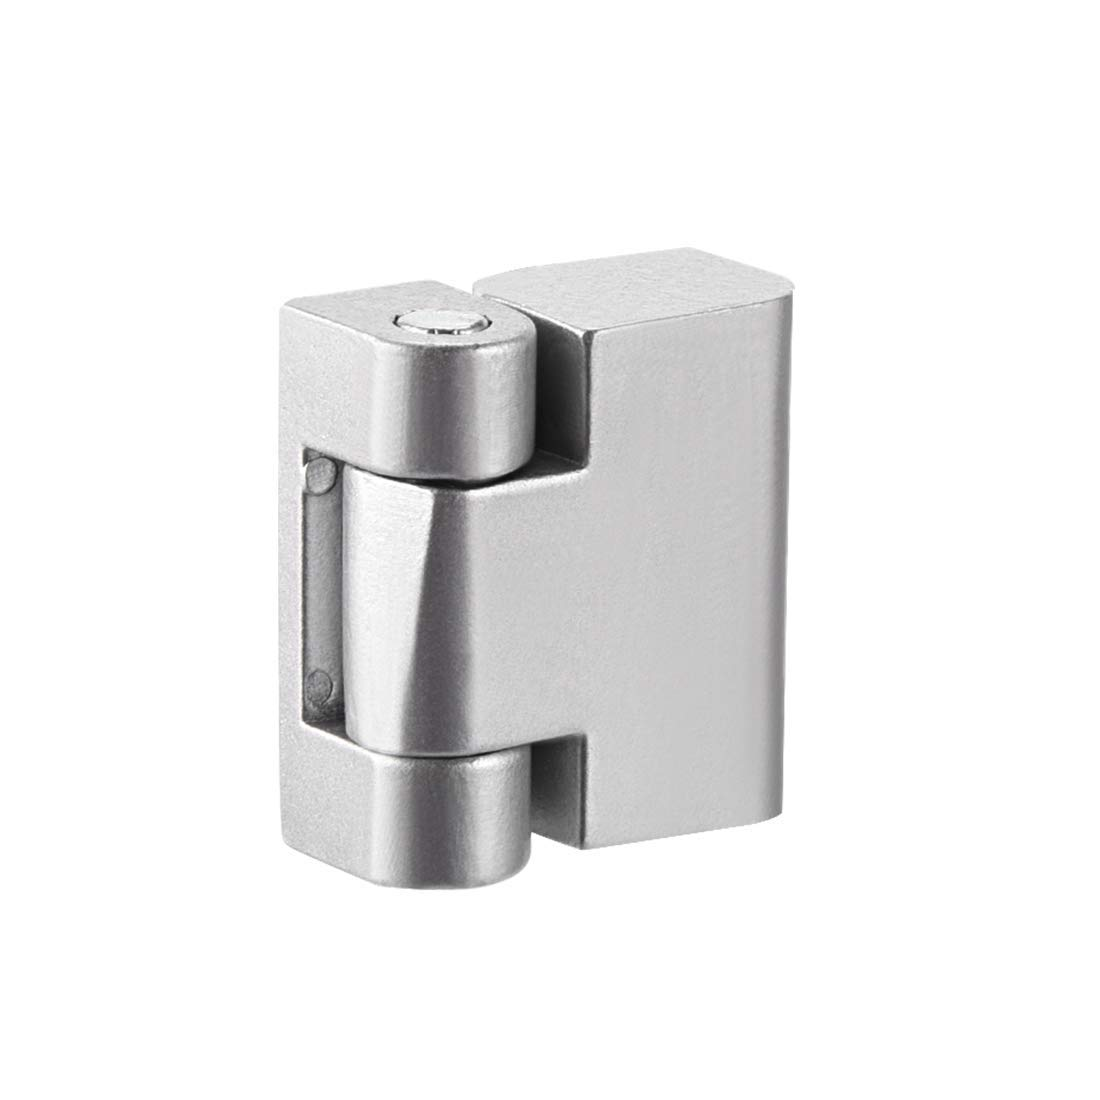 uxcell Cabinet Gate Closet Door 30mm Length Zinc Alloy Hinge Matte Color